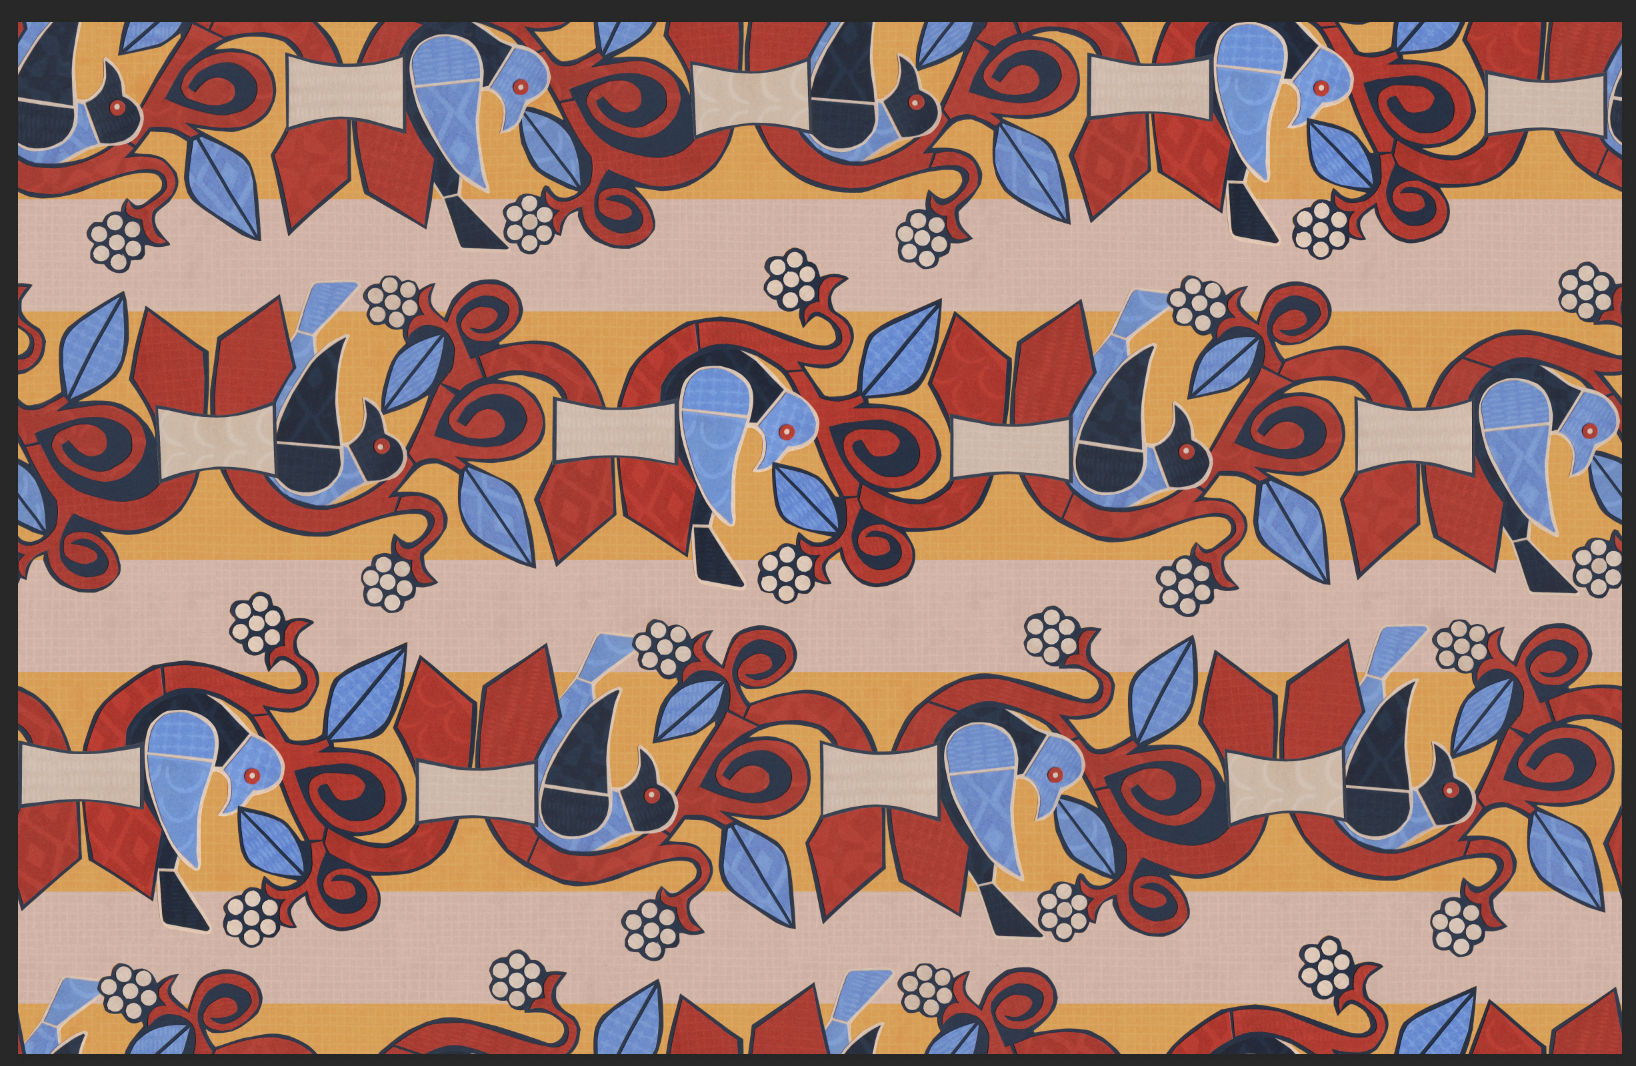 image of a repeating pattern of birds